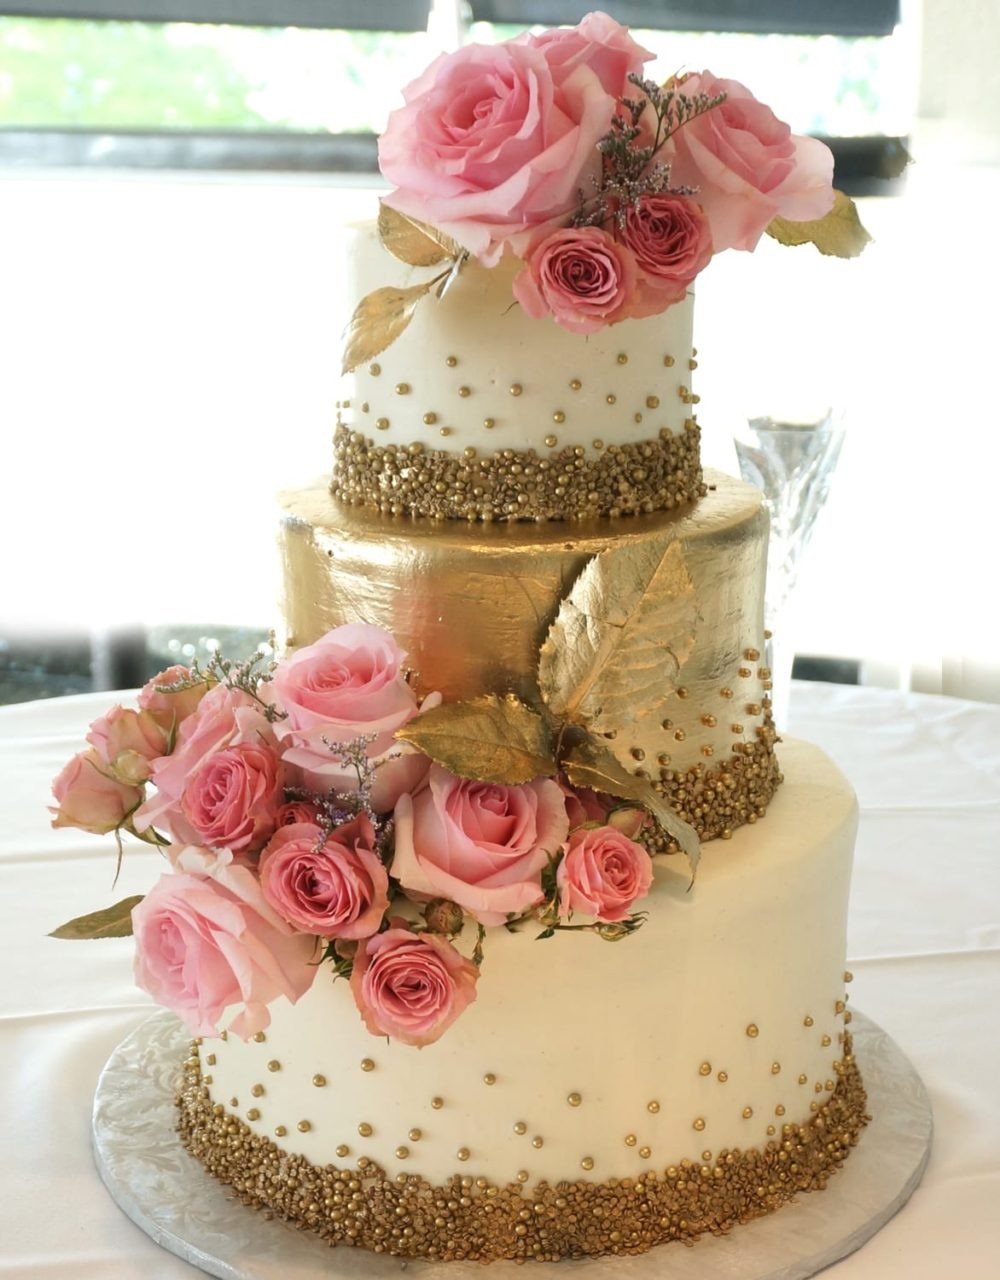 Wedding Cakes Photo Gallery  Wedding Cakes Gallery – Dreamcakes Bakery